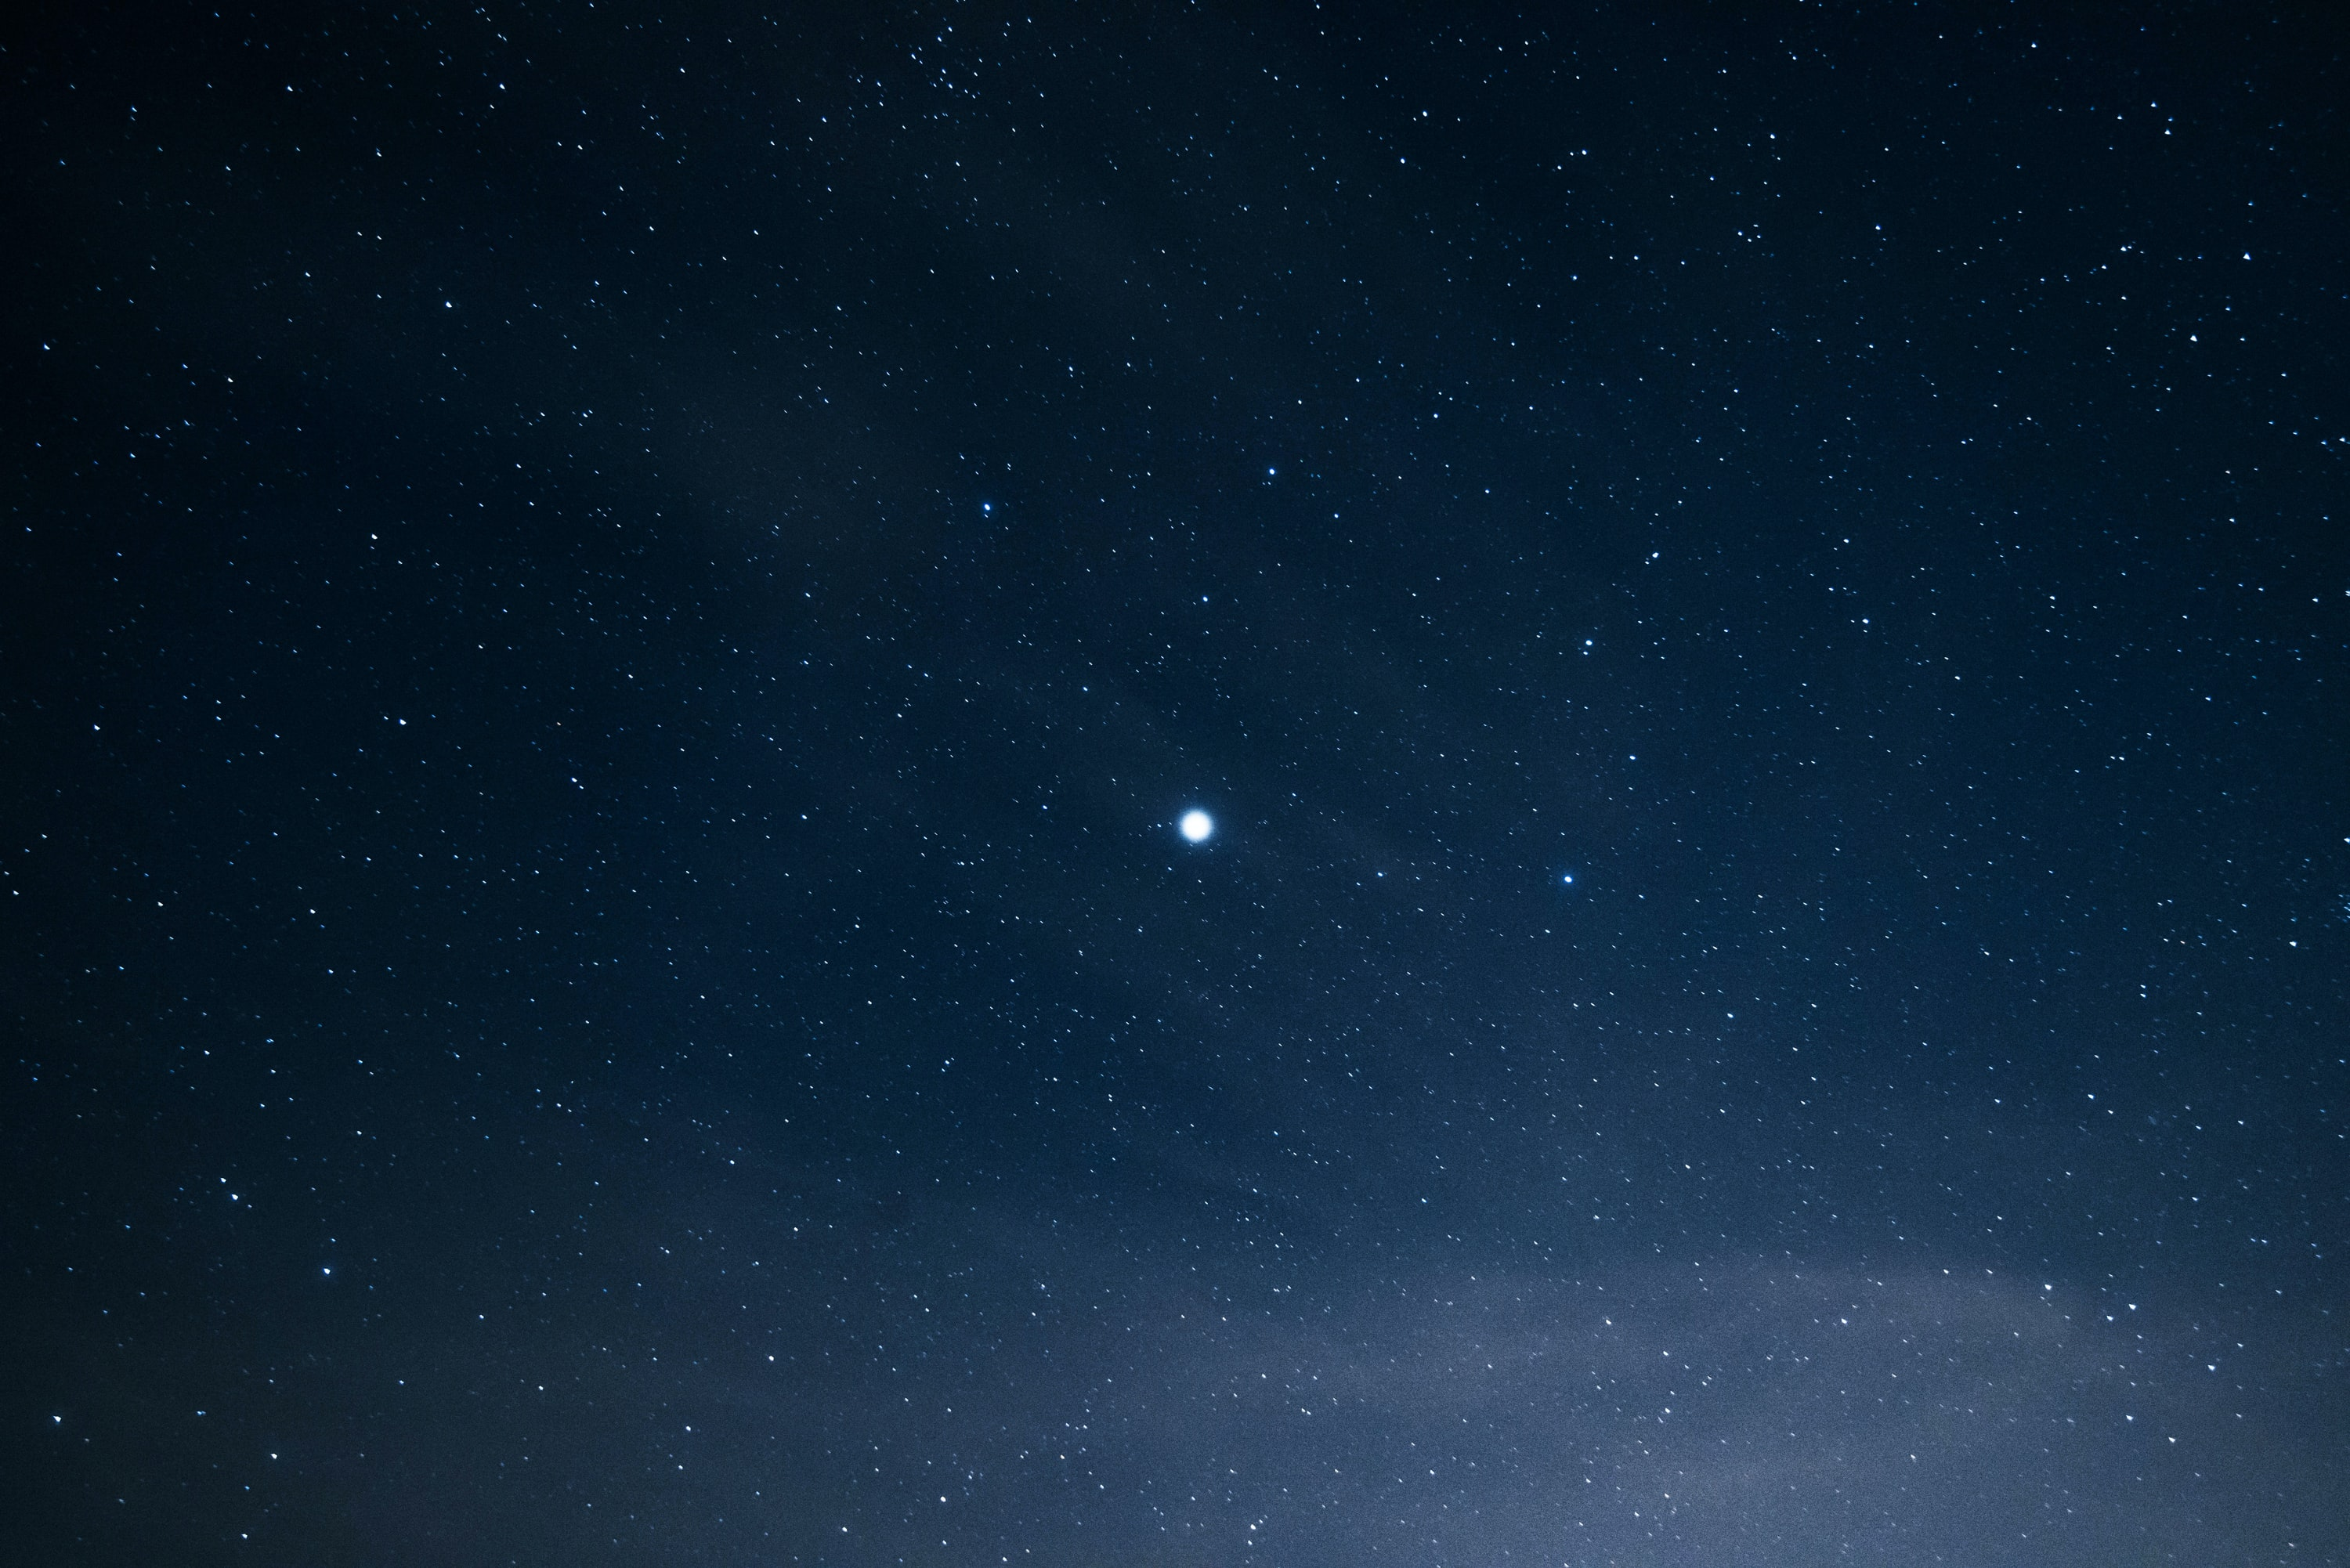 In the night sky full of stars stands a bright lone star